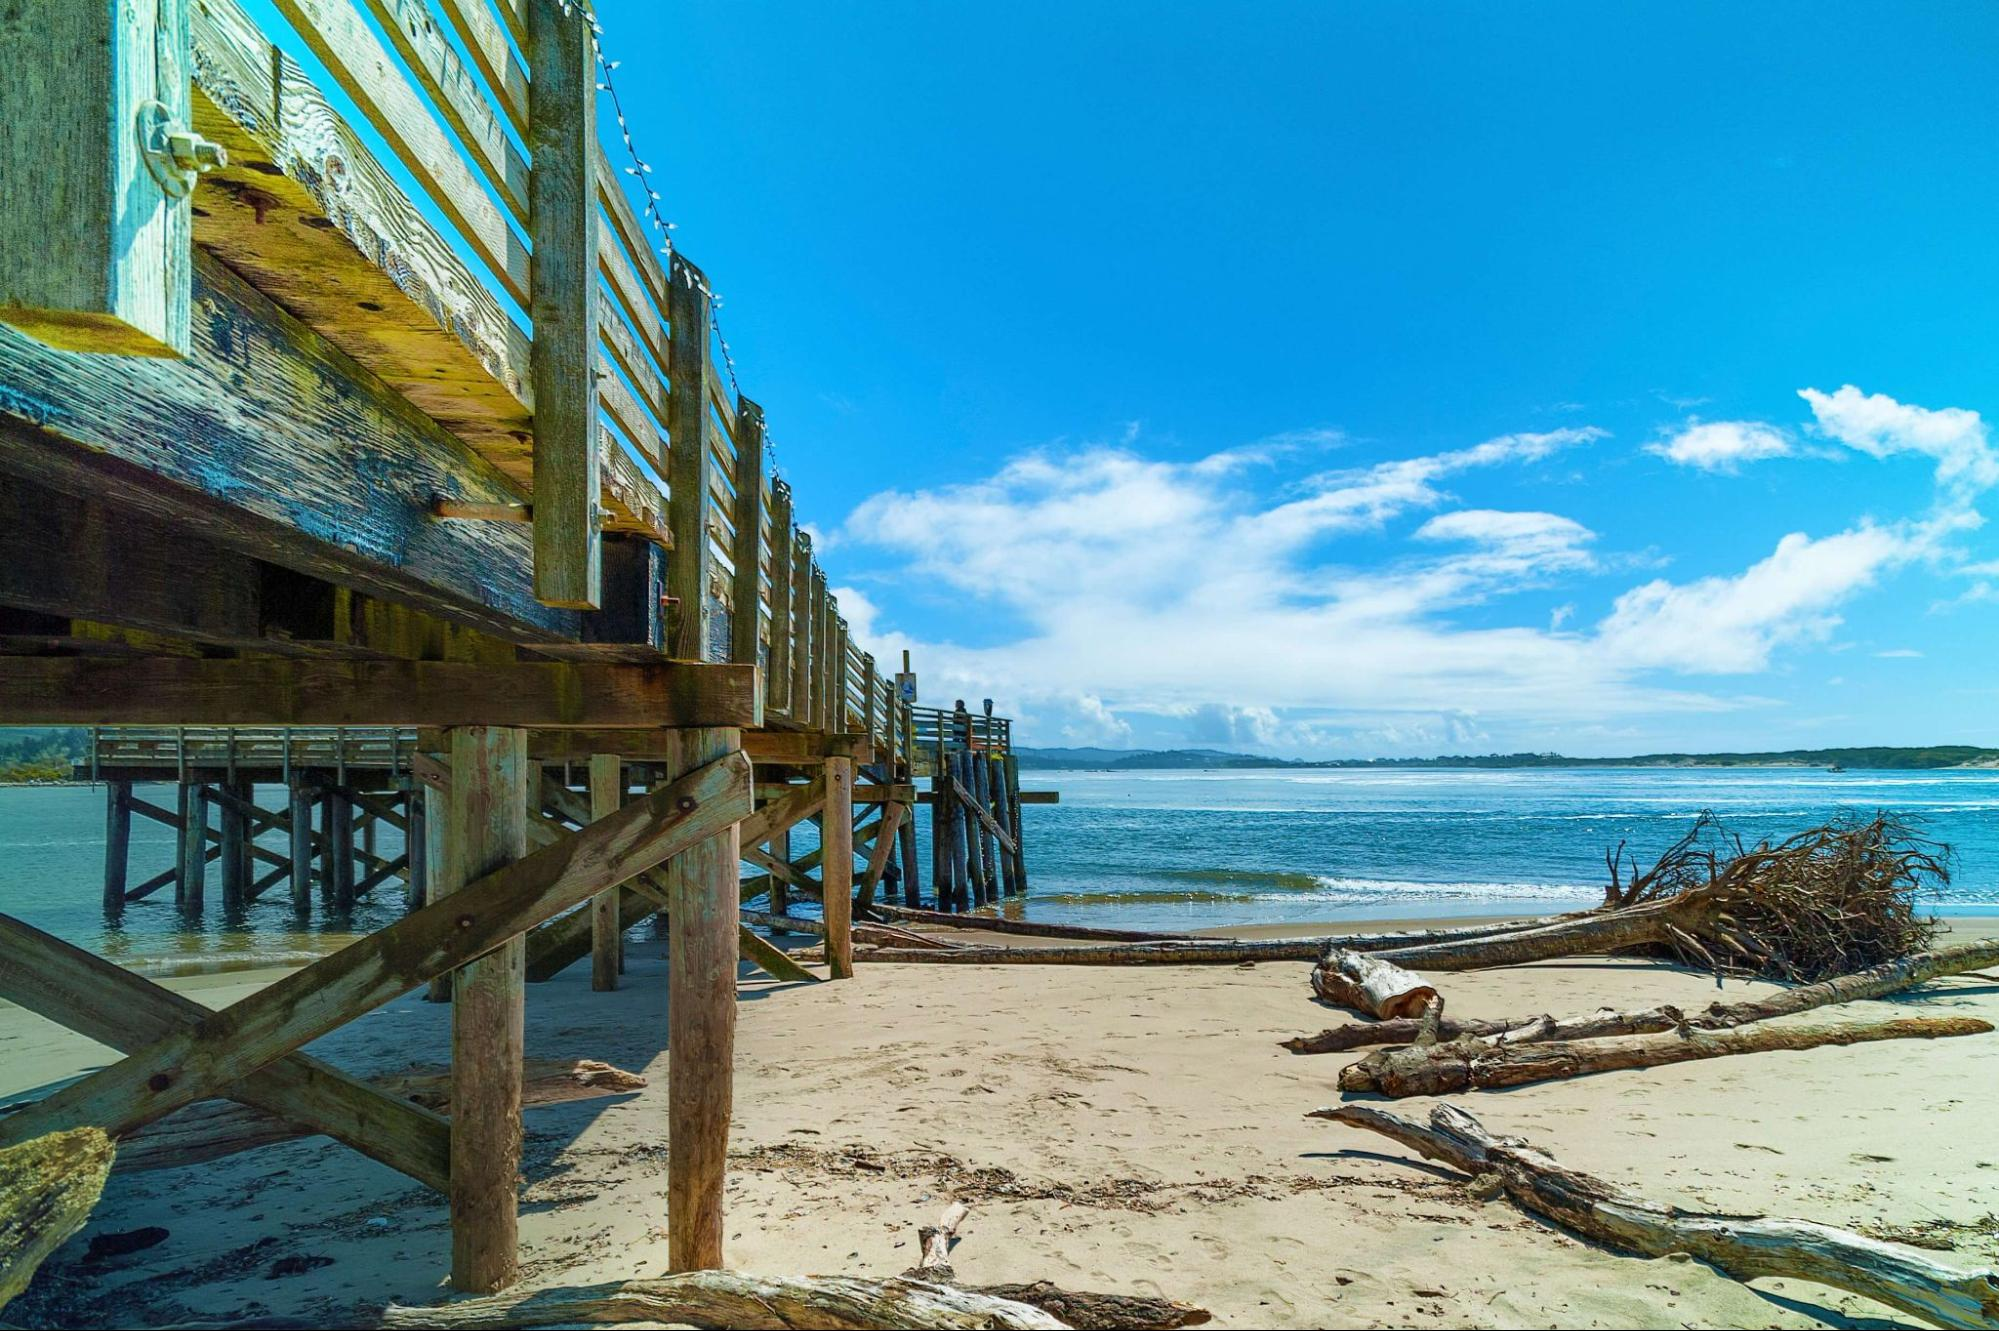 Photo of a Dock on the Beach in Lincoln City, Oregon.